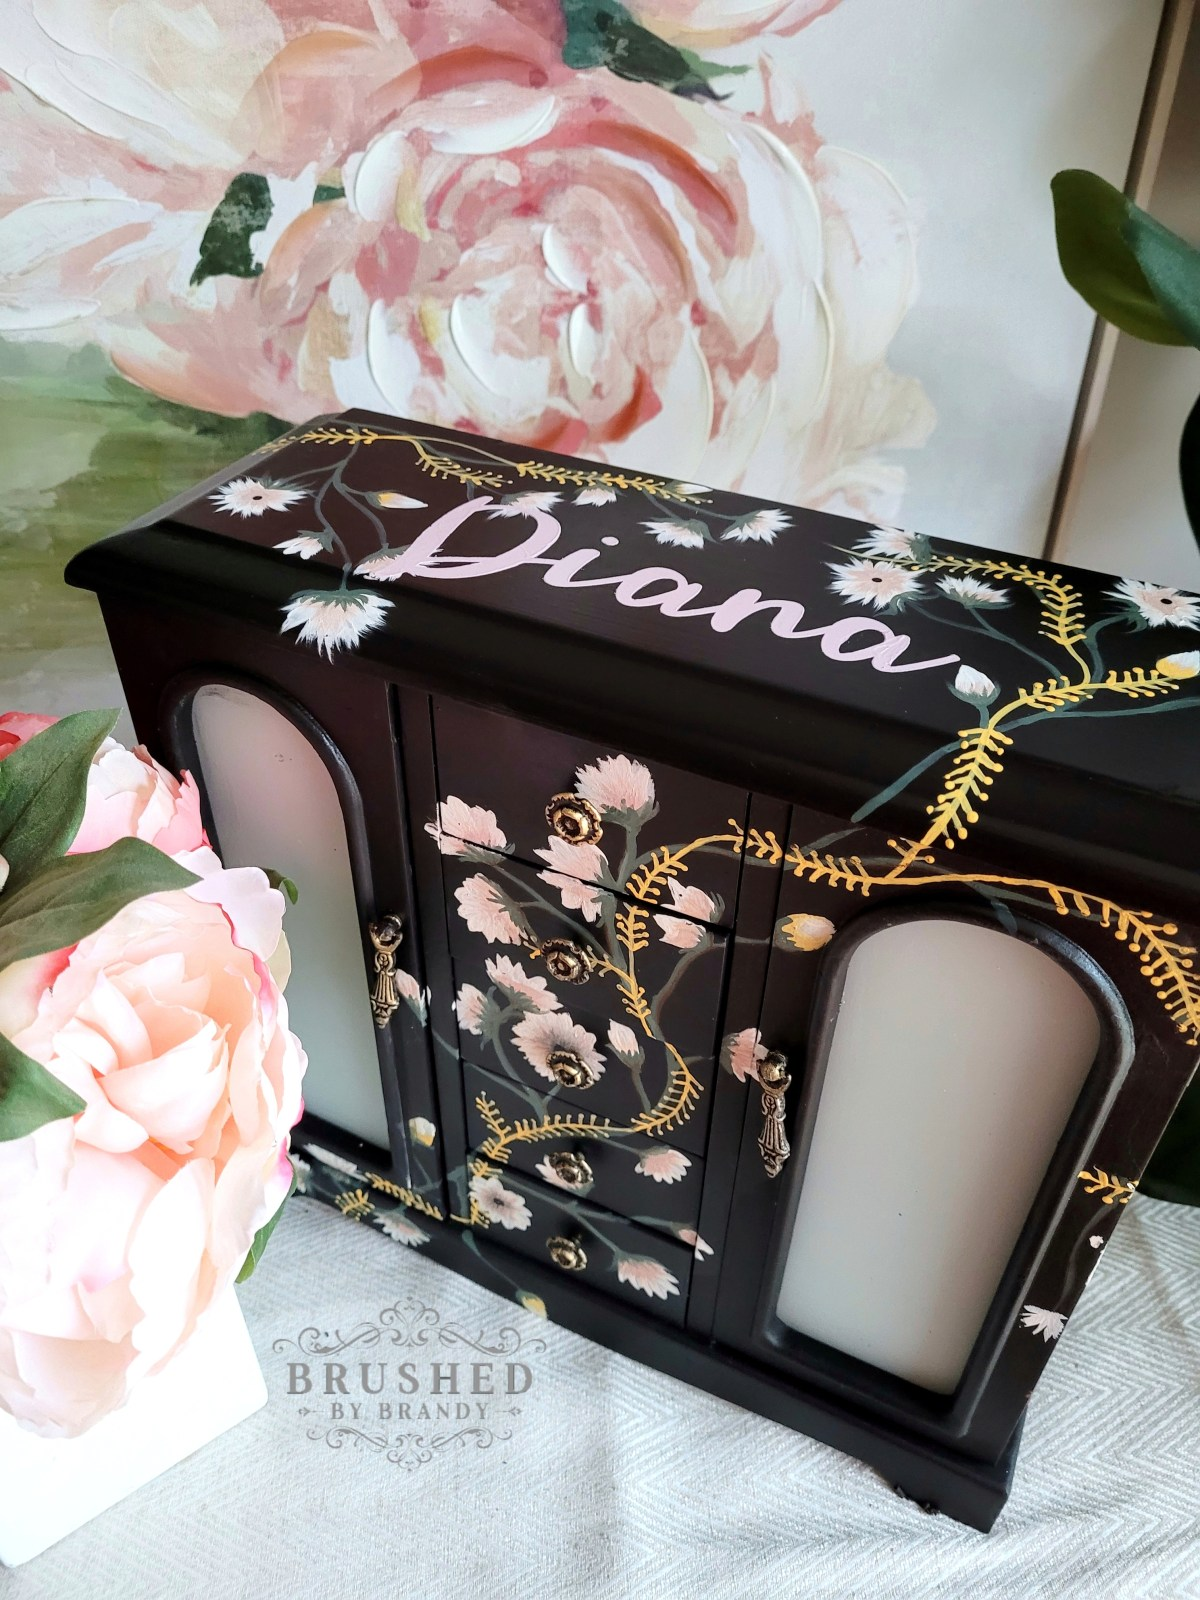 Painted Jewelry Box Brushed by Brandy Dixie Belle Chalk Paint